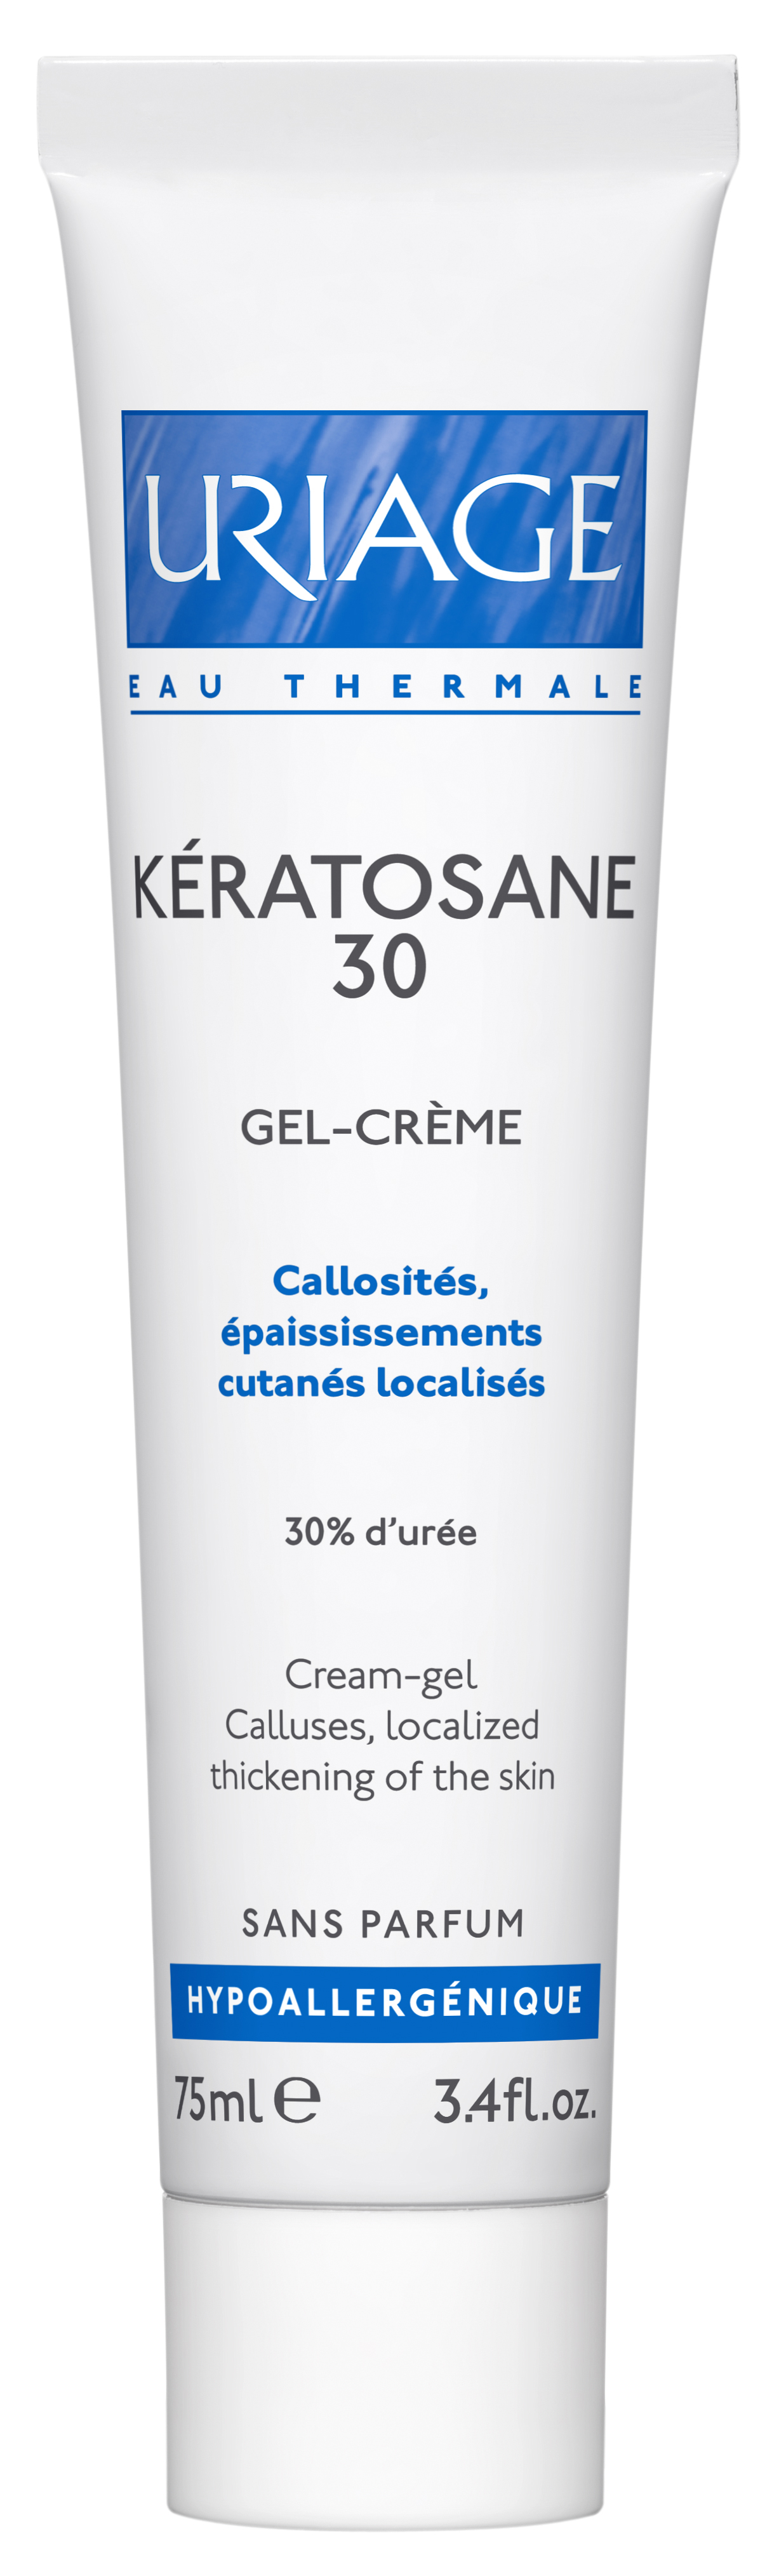 Uriage Keratosane 30 75 mL